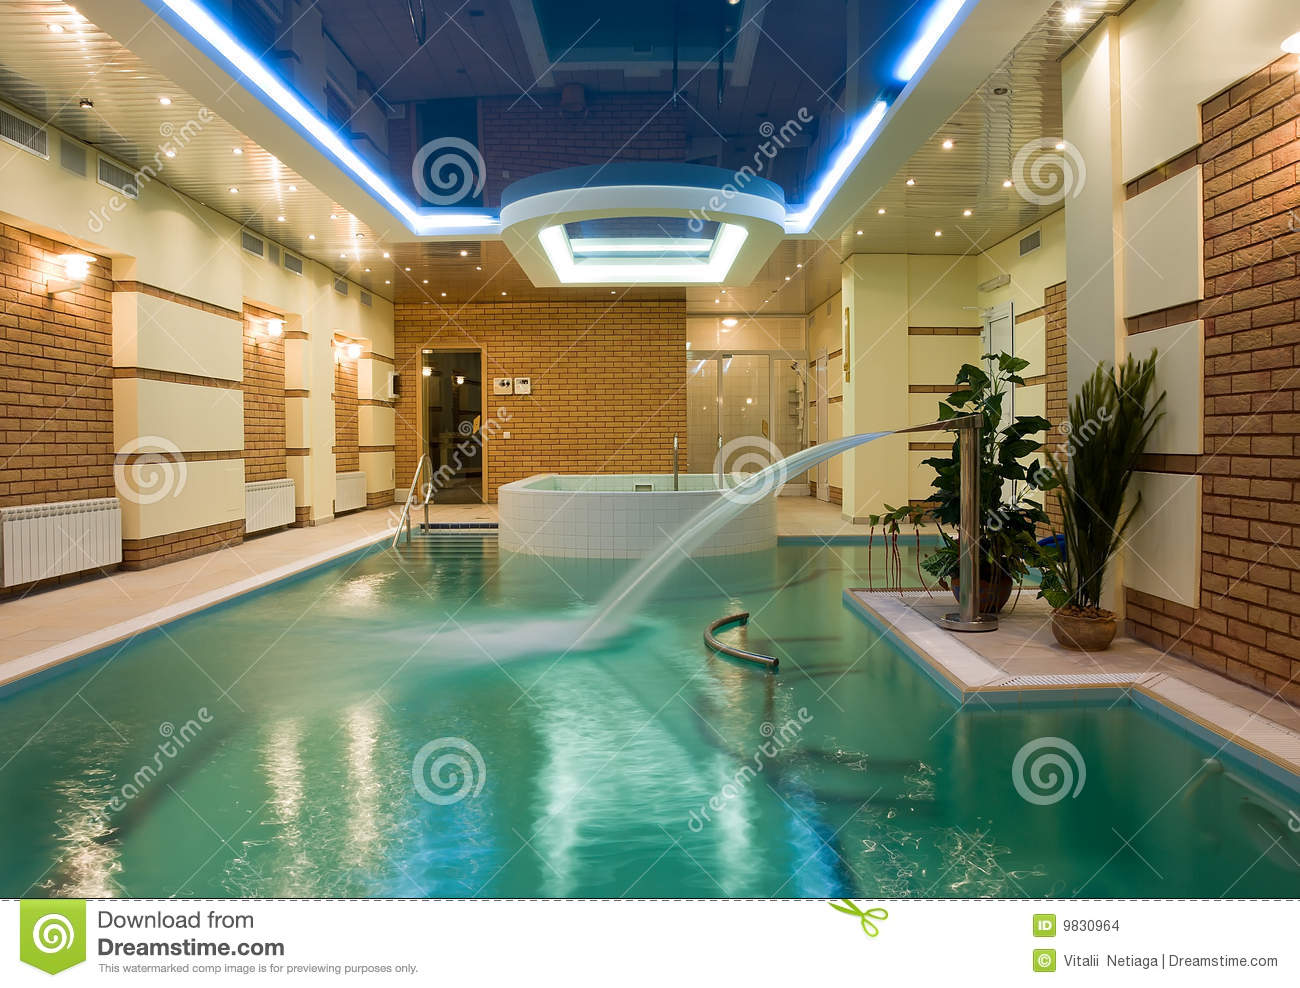 Piscine de luxe photo stock image du m tal lumi re for Piscine destock